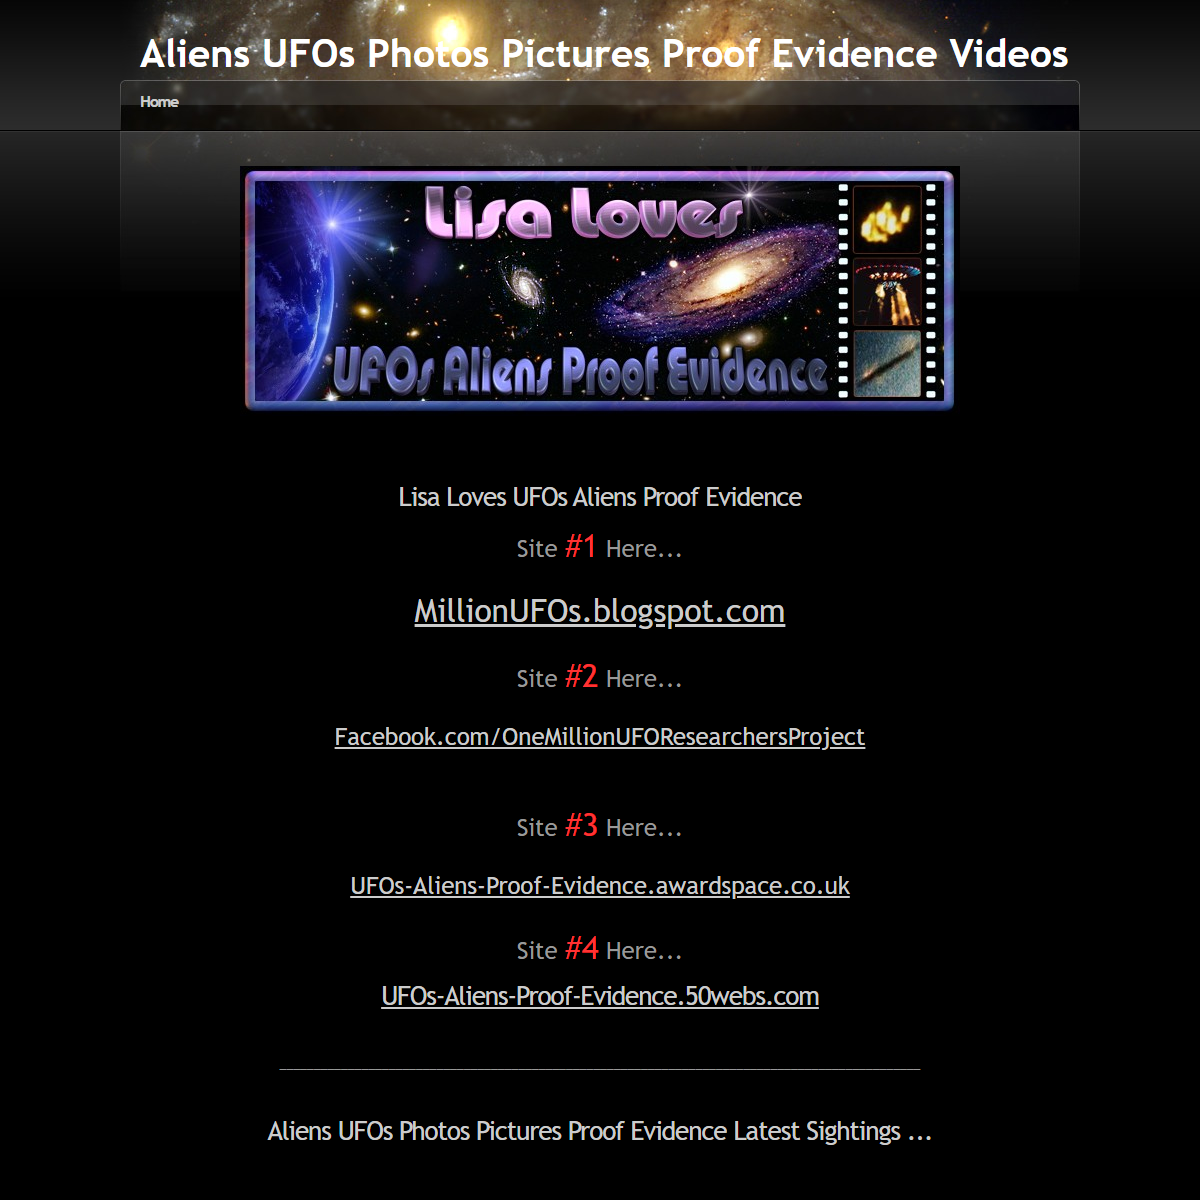 Aliens UFOs Photos Pictures Proof